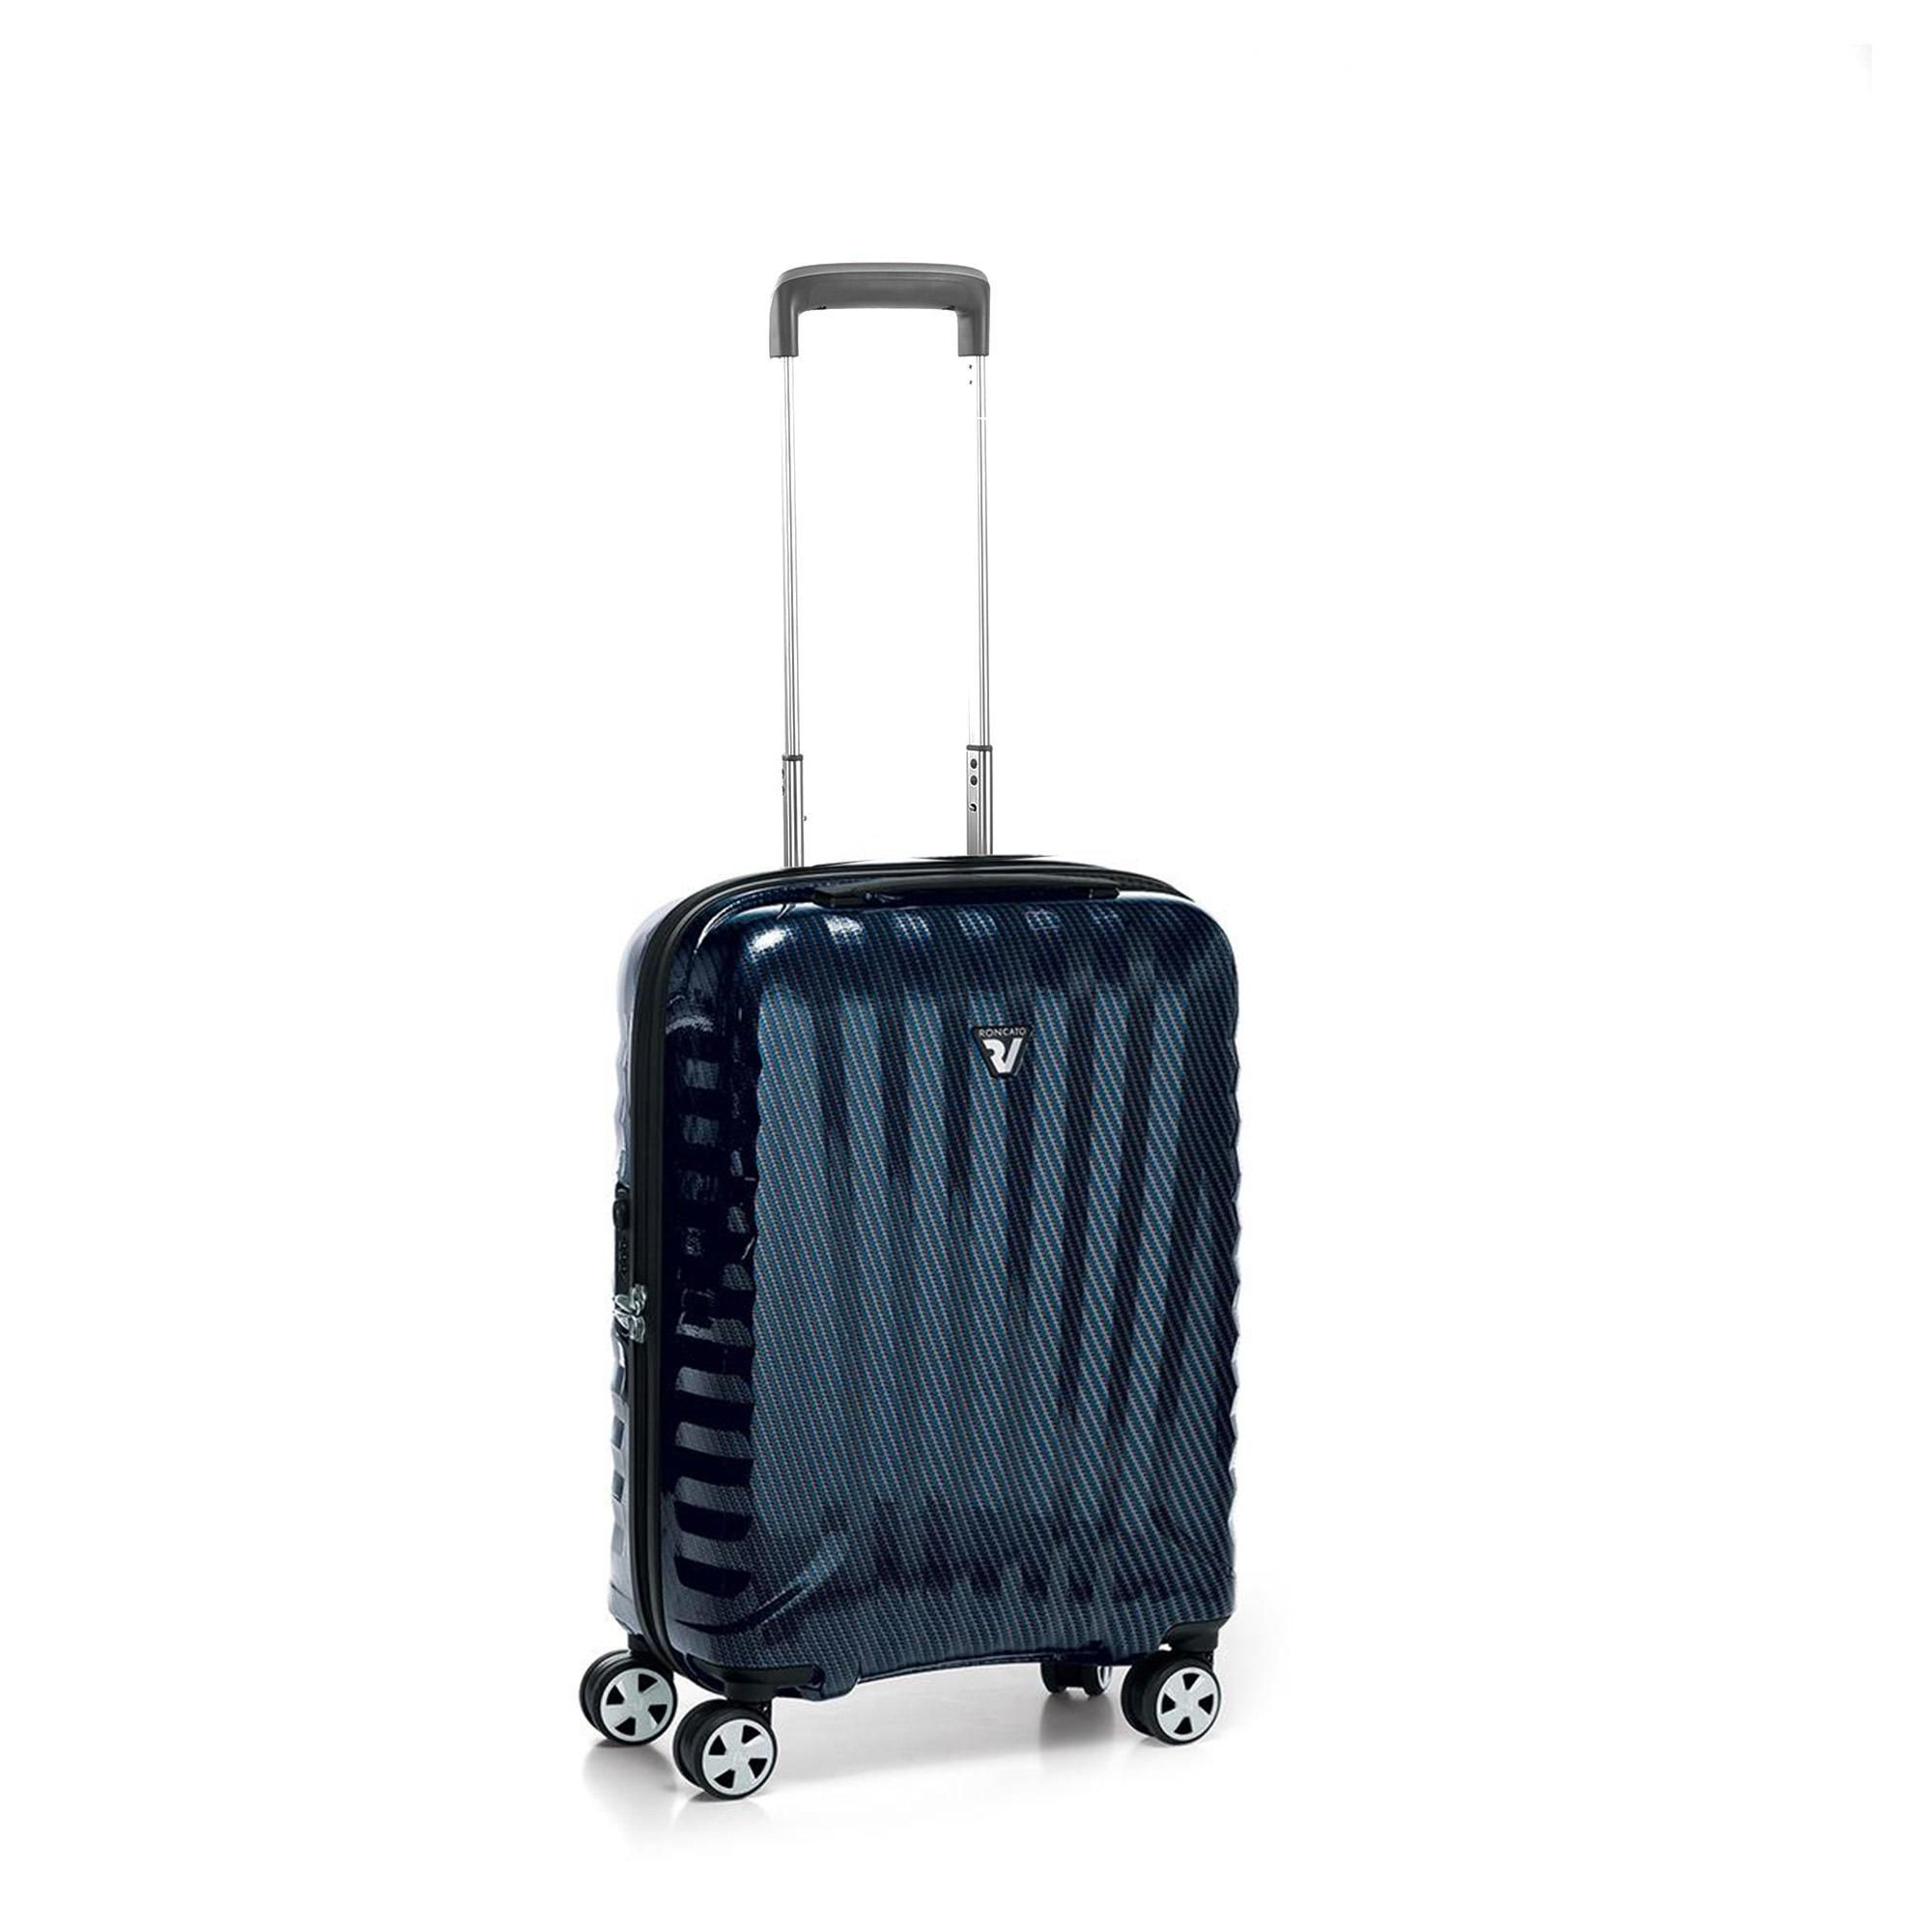 vip blue cabins bags suitcase luggage cabin product collection barbados dark